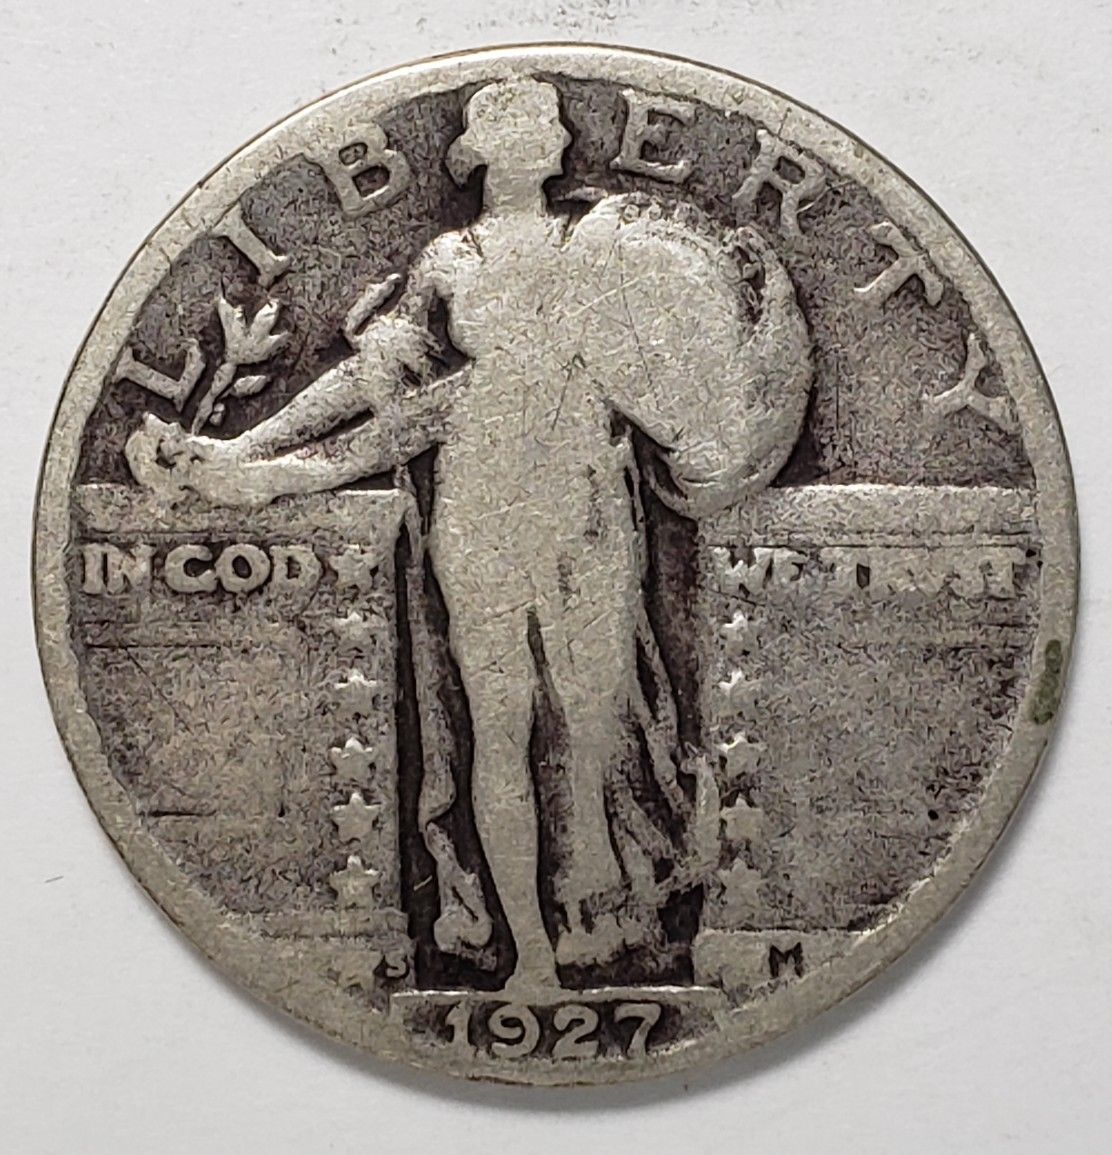 1927S STANDING LIBERTY QUARTER COIN Lot # 818-42